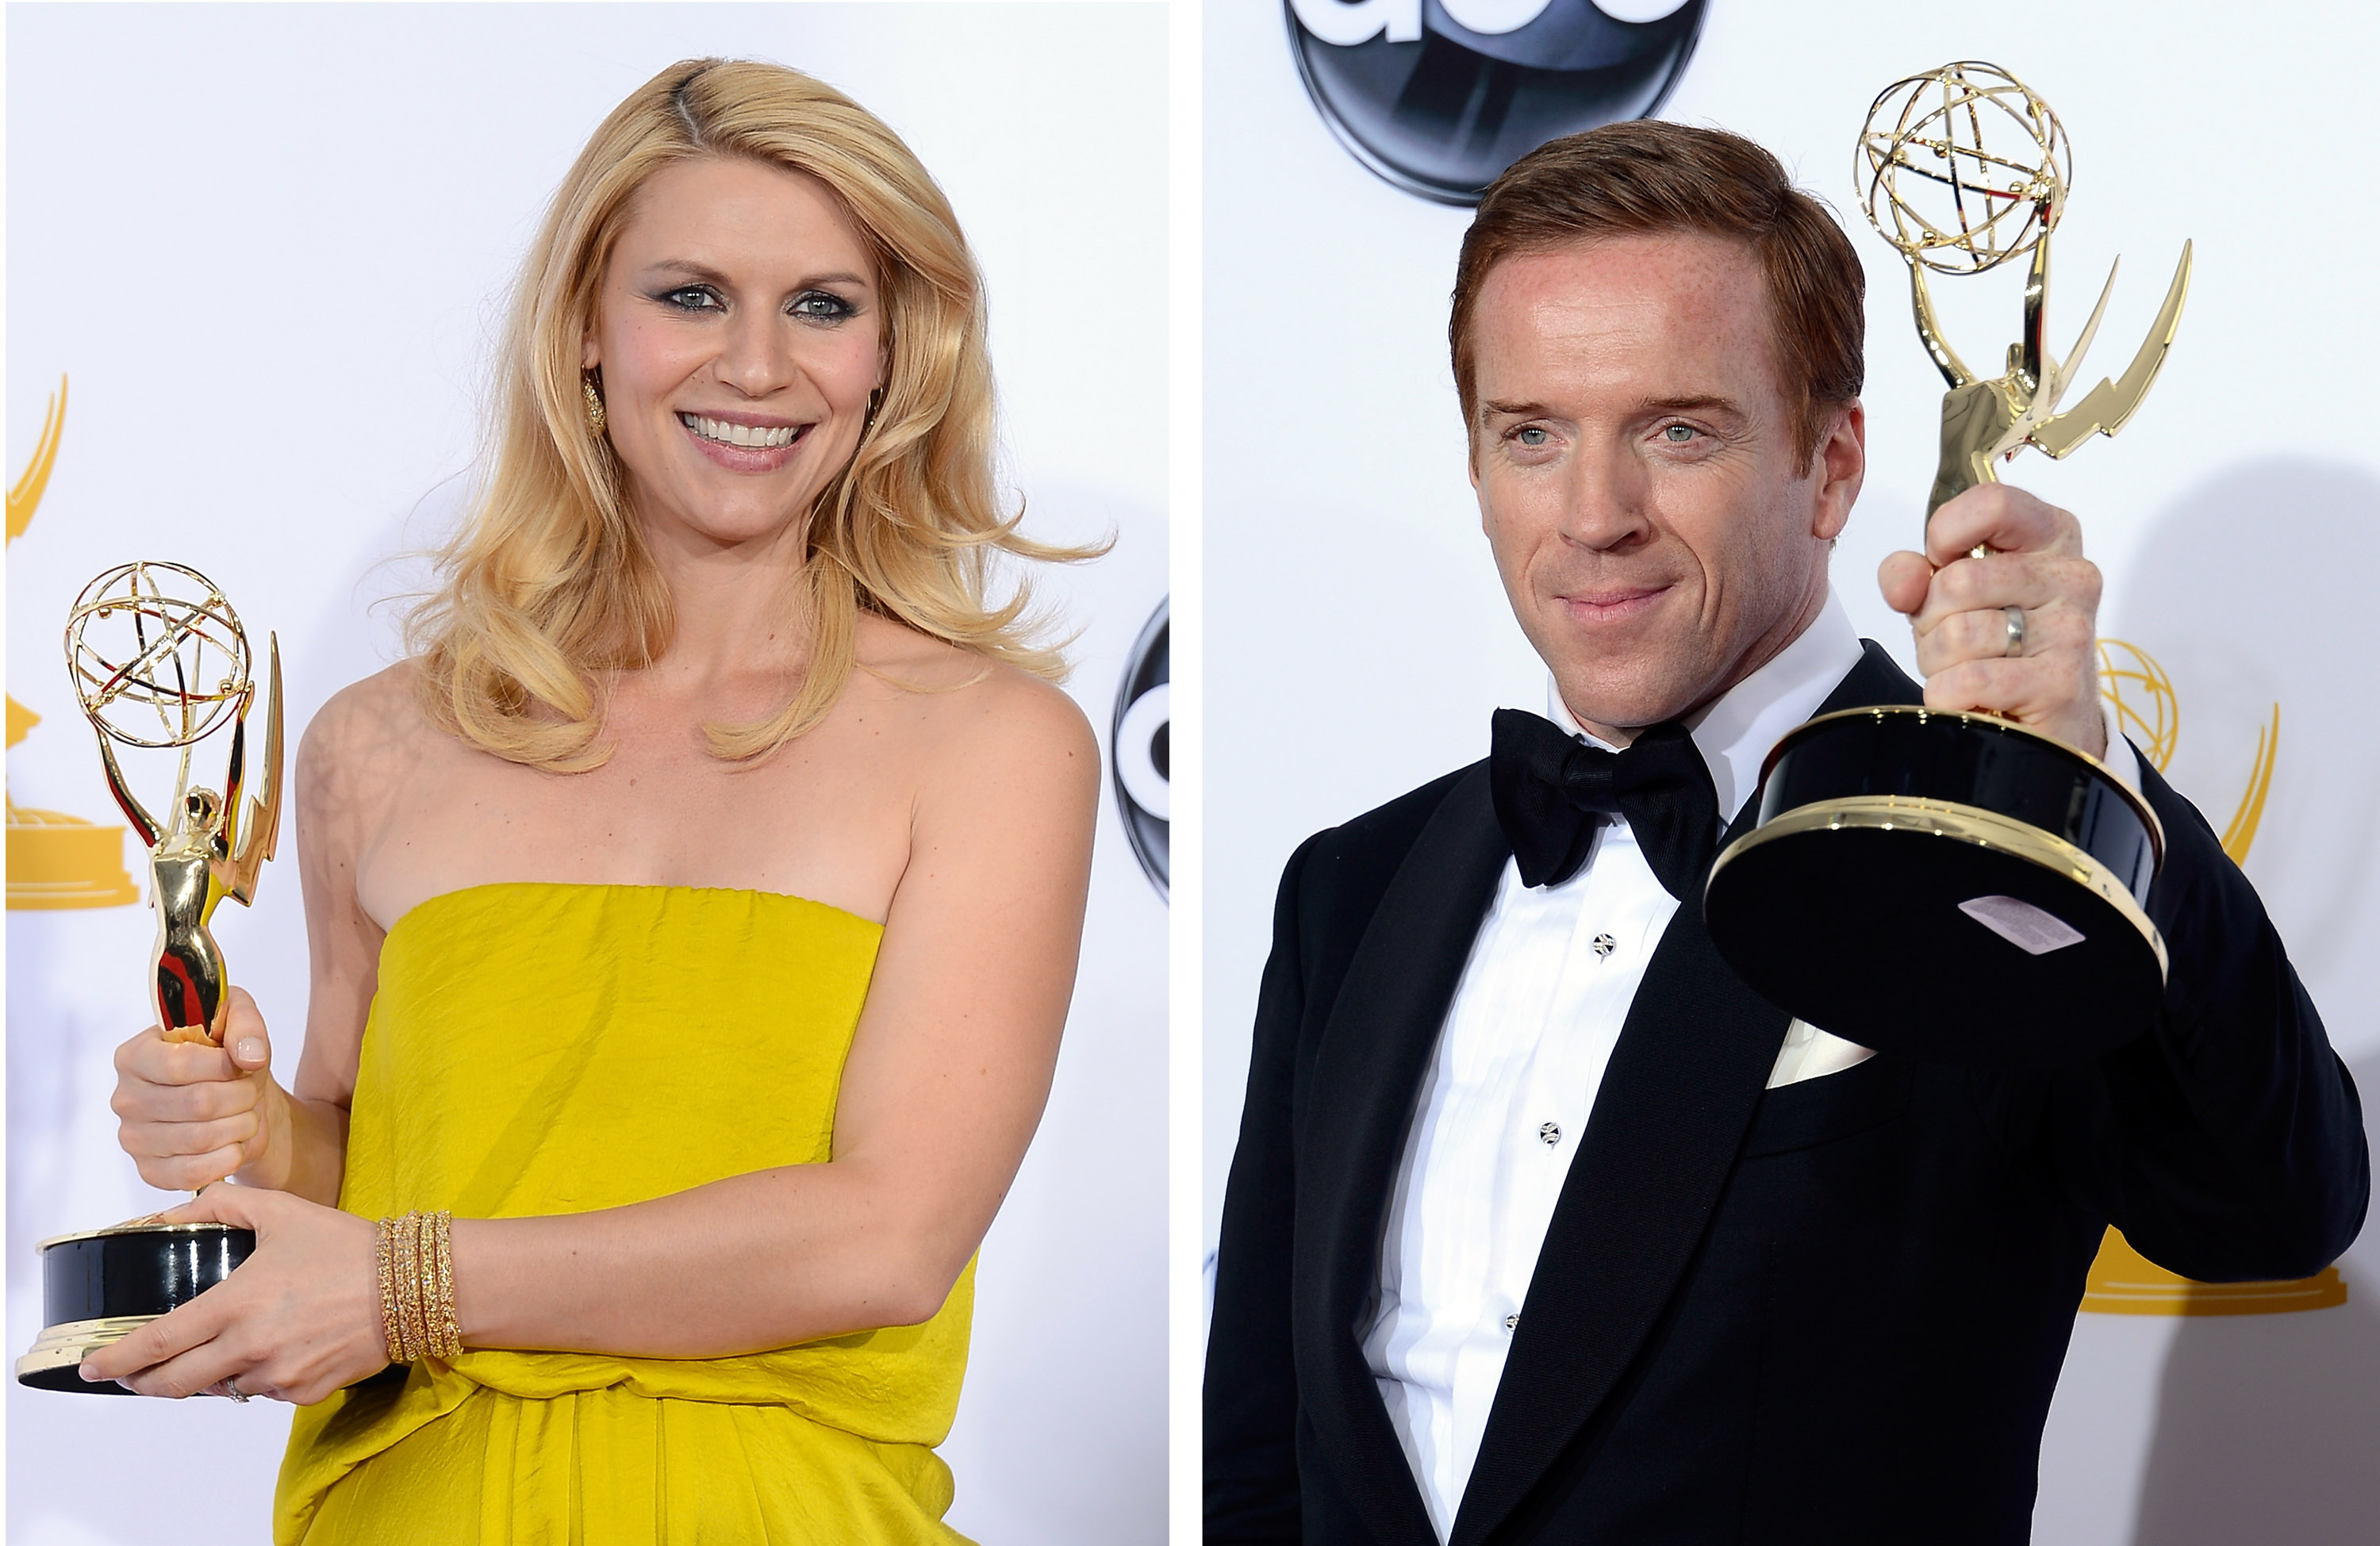 Claire Danes and Damian Lewis at the 64th Annual Primetime Emmy Awards on September 23, 2012. (Photo by Kevork Djansezian/Getty Images)